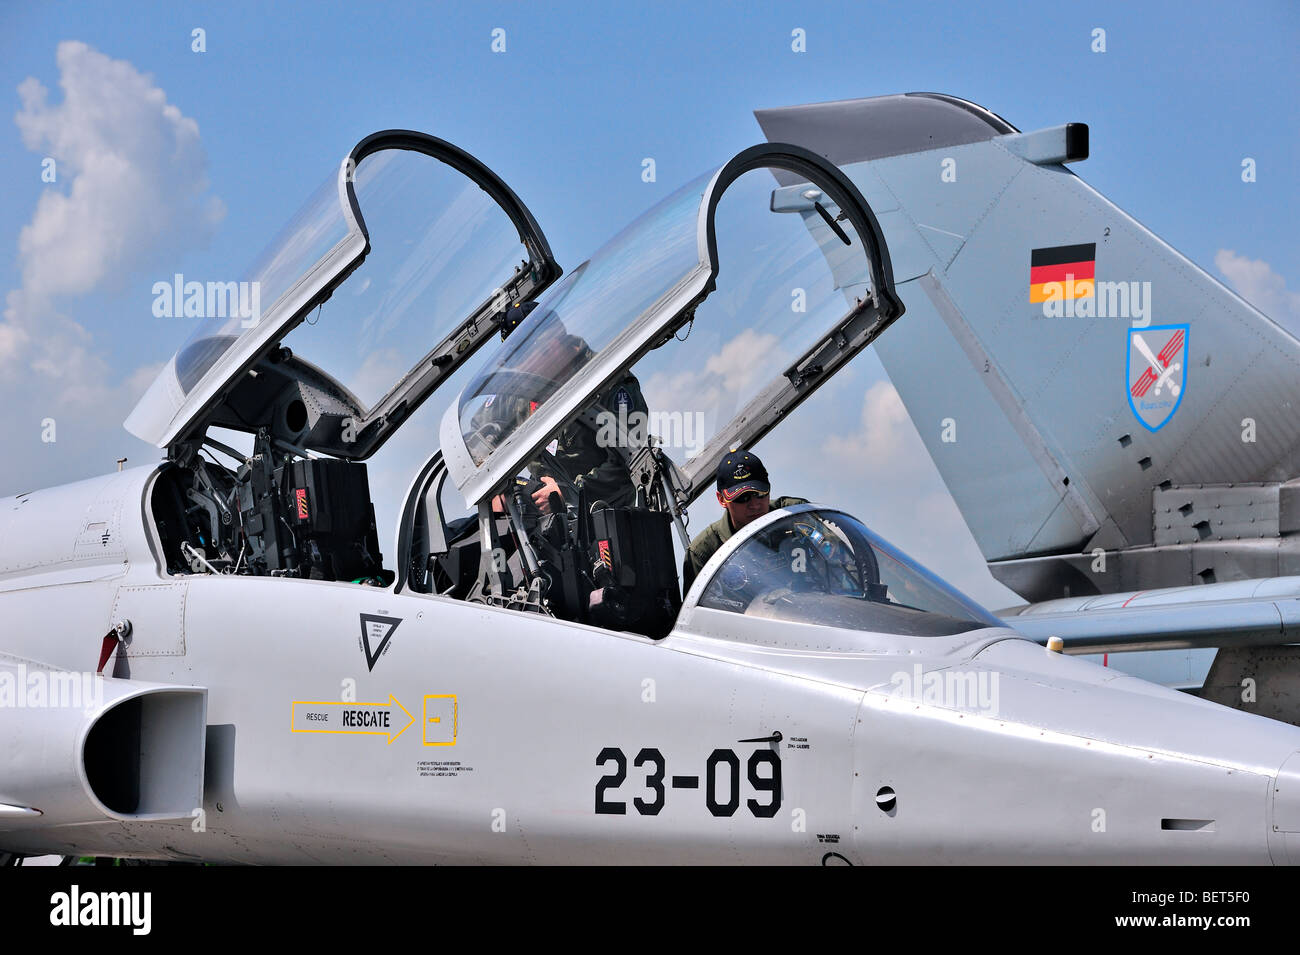 Cockpit of jet fighter plane at the airshow at Koksijde, Belgium - Stock Image